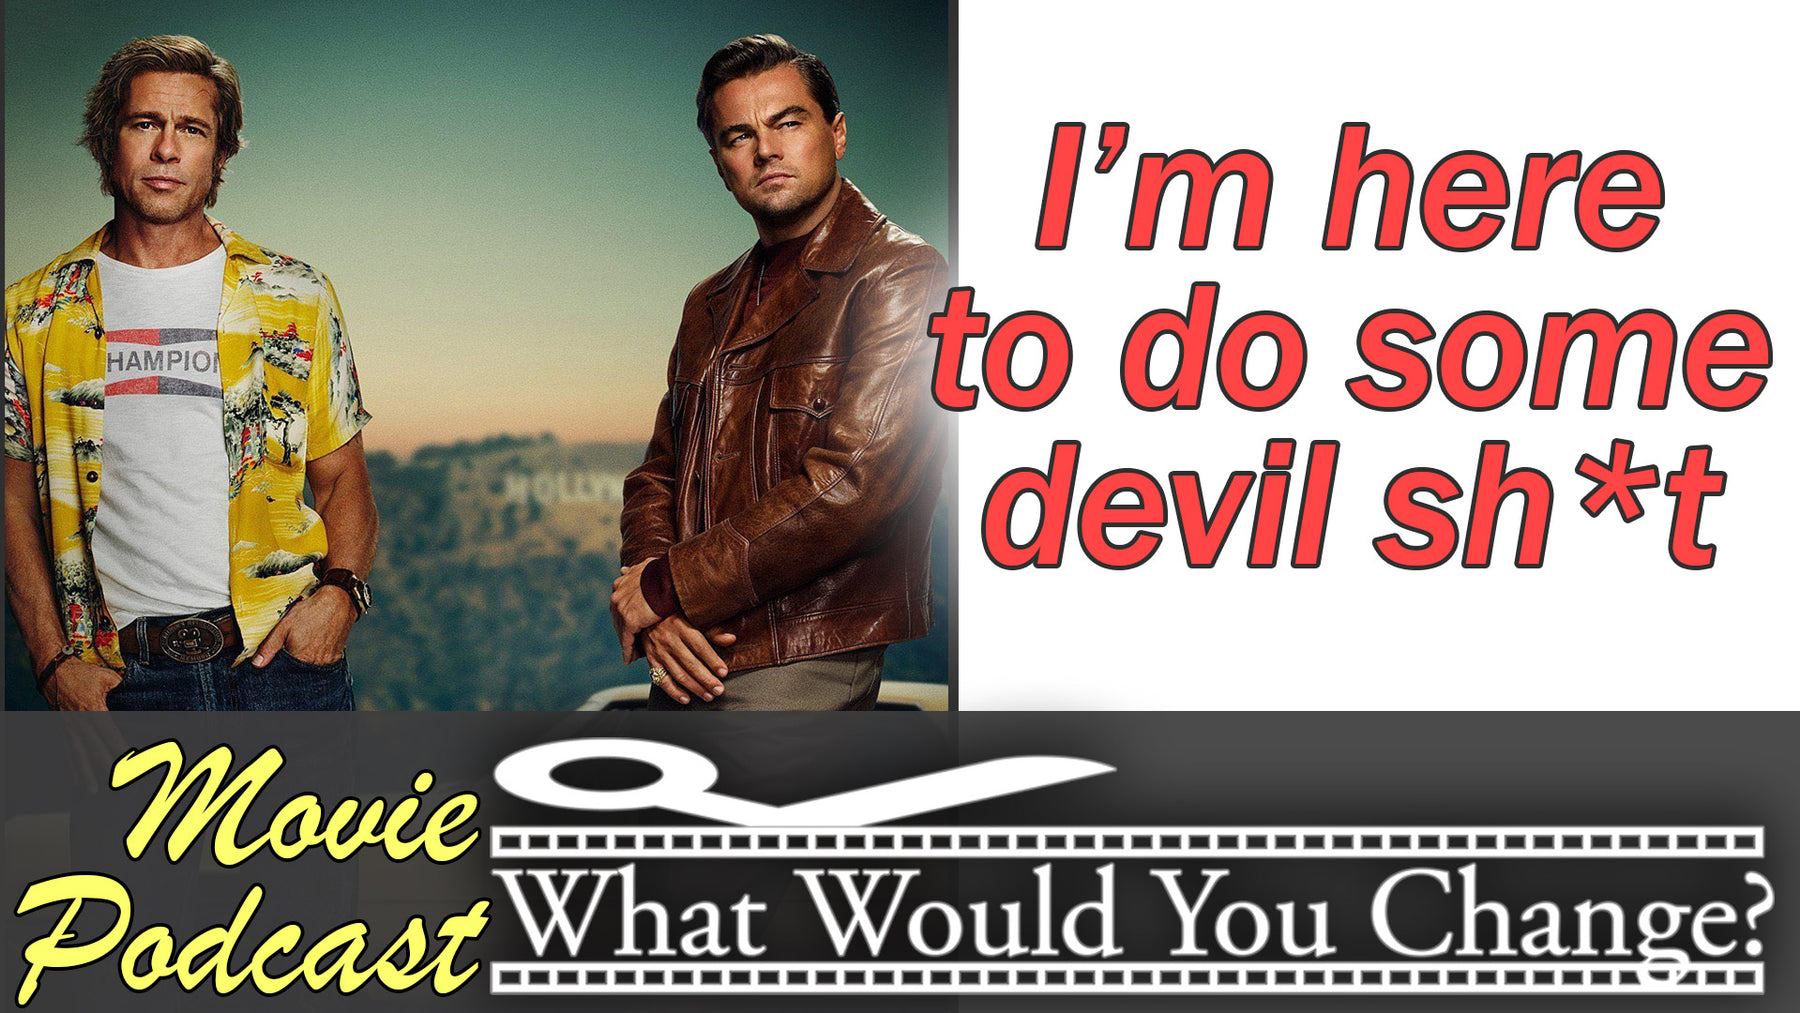 Once Upon a Time in Hollywood | 2019 | What Would You Change? | Movie Podcast